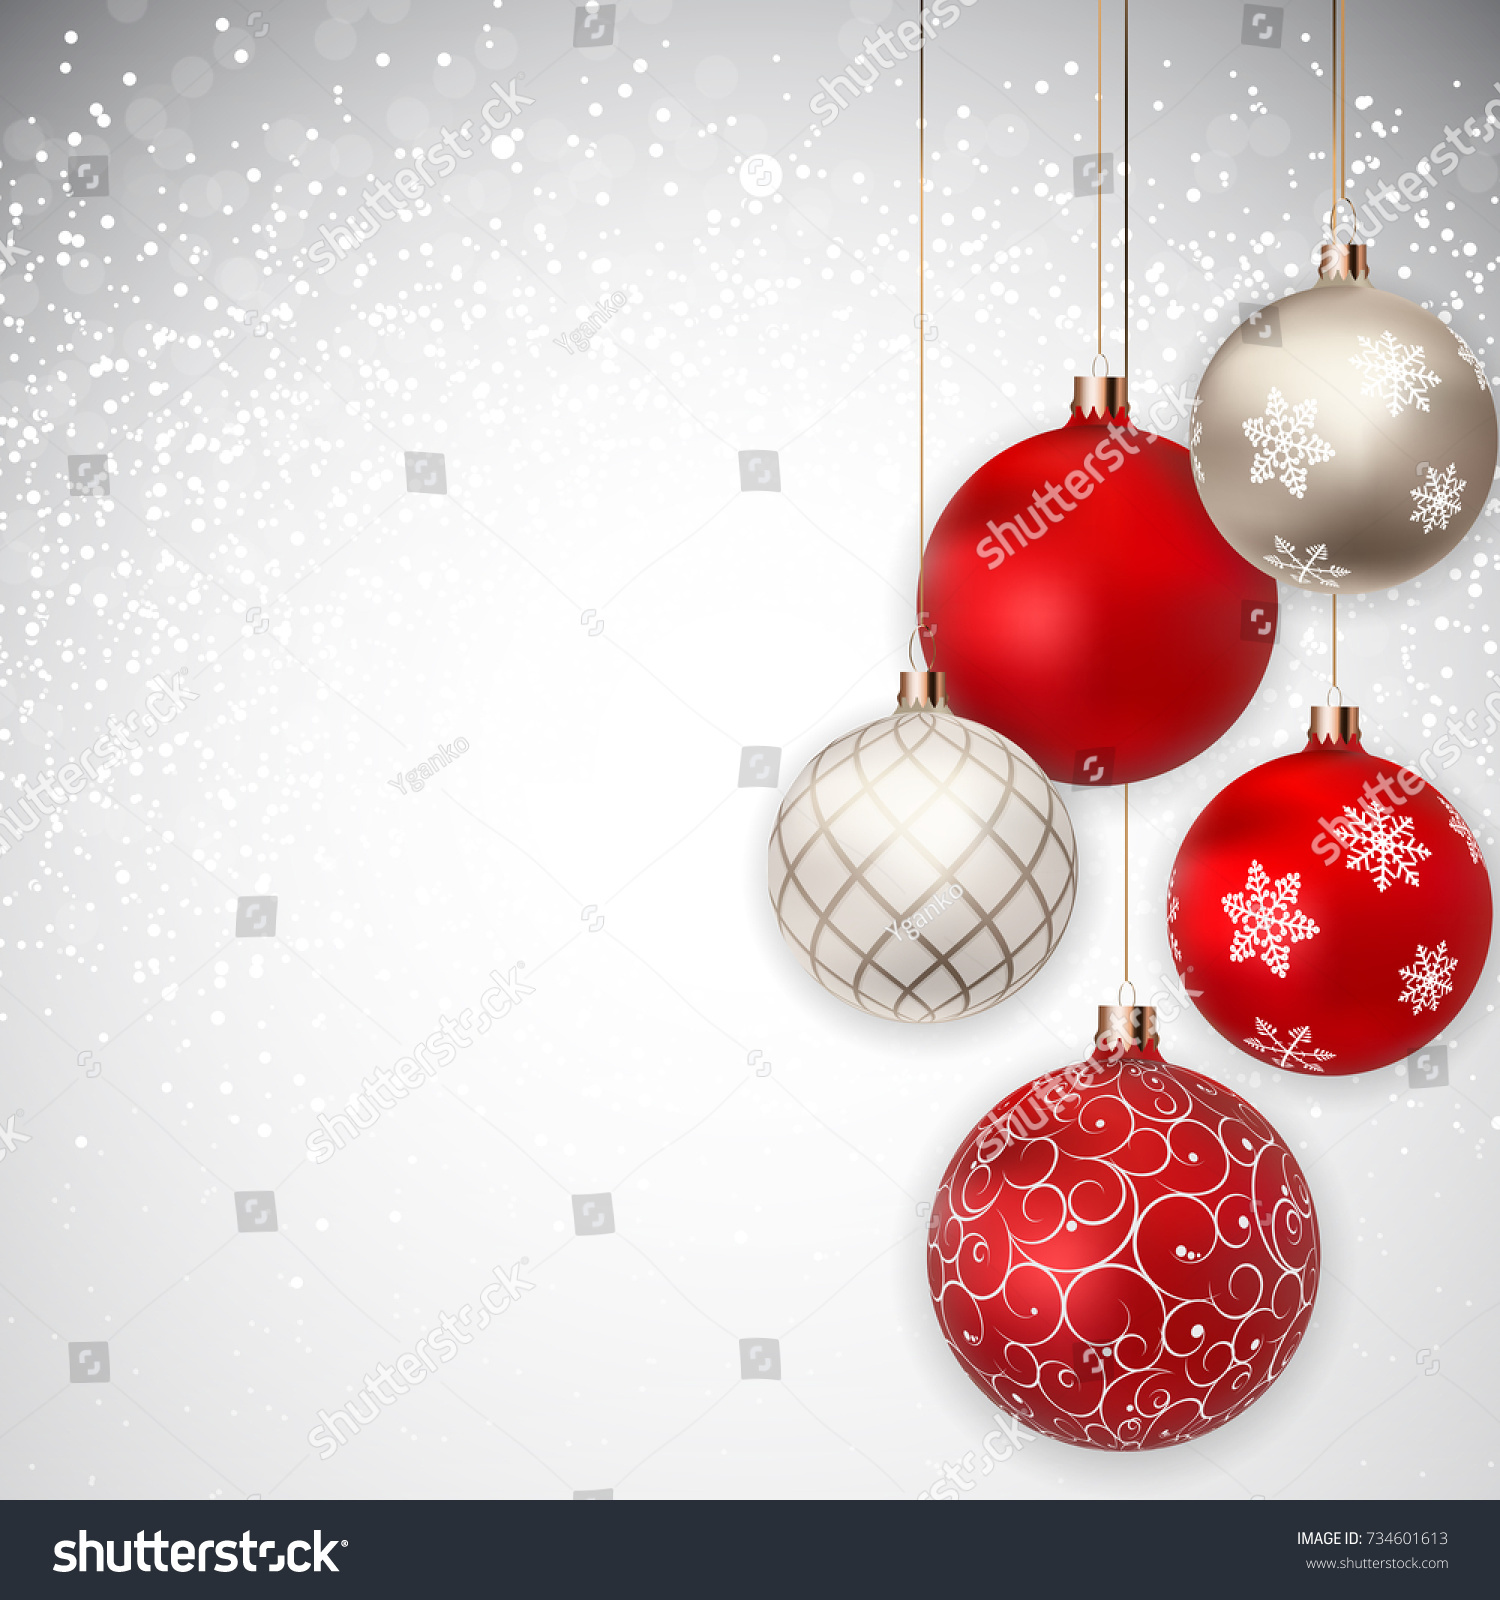 merry christmas new year background vector stock vector royalty free 734601613 https www shutterstock com image vector merry christmas new year background vector 734601613